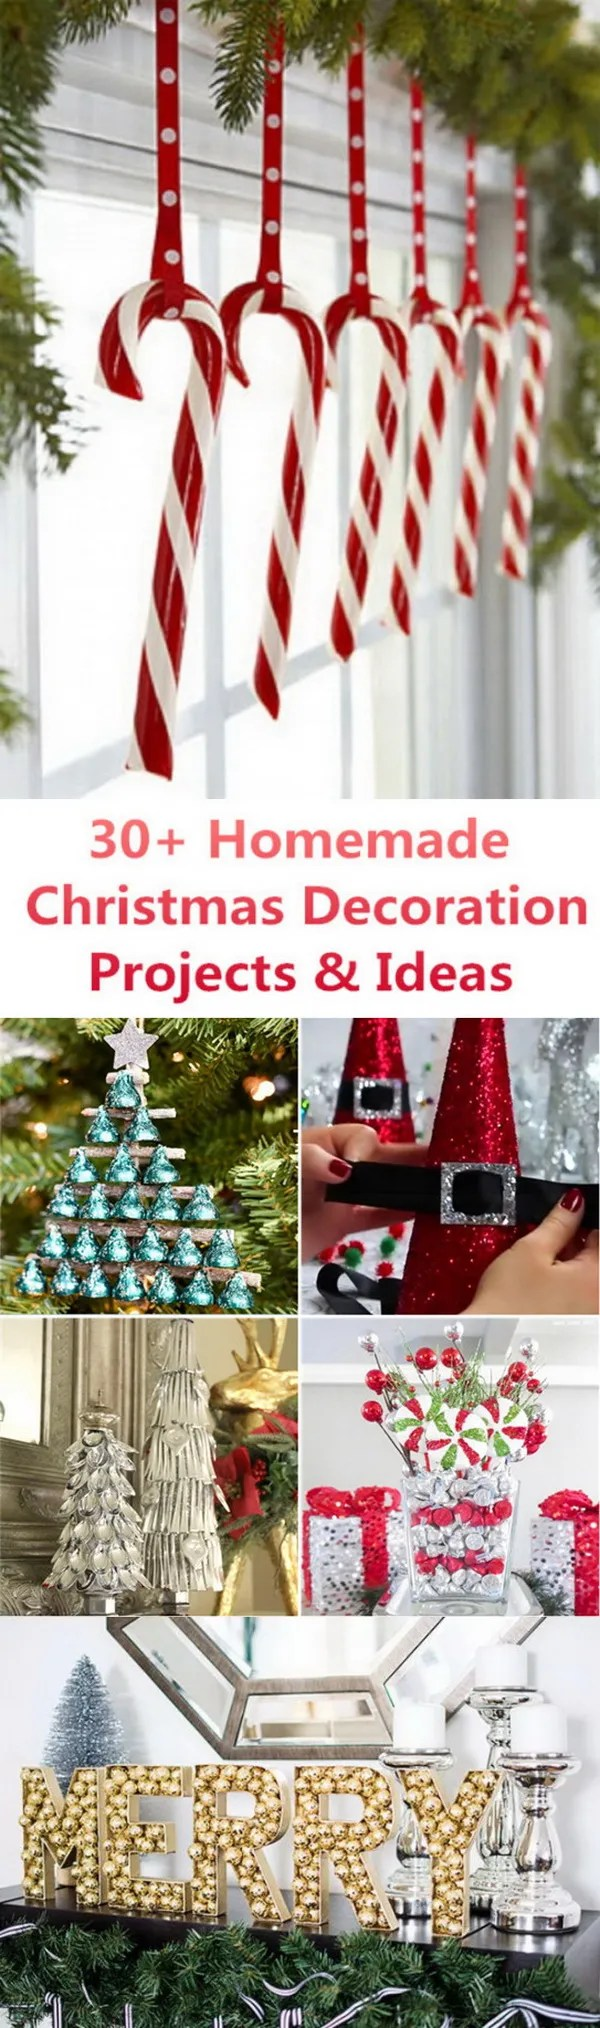 30 homemade christmas decoration projects ideas christmas is probably the best time of - Christmas Decoration Craft Ideas